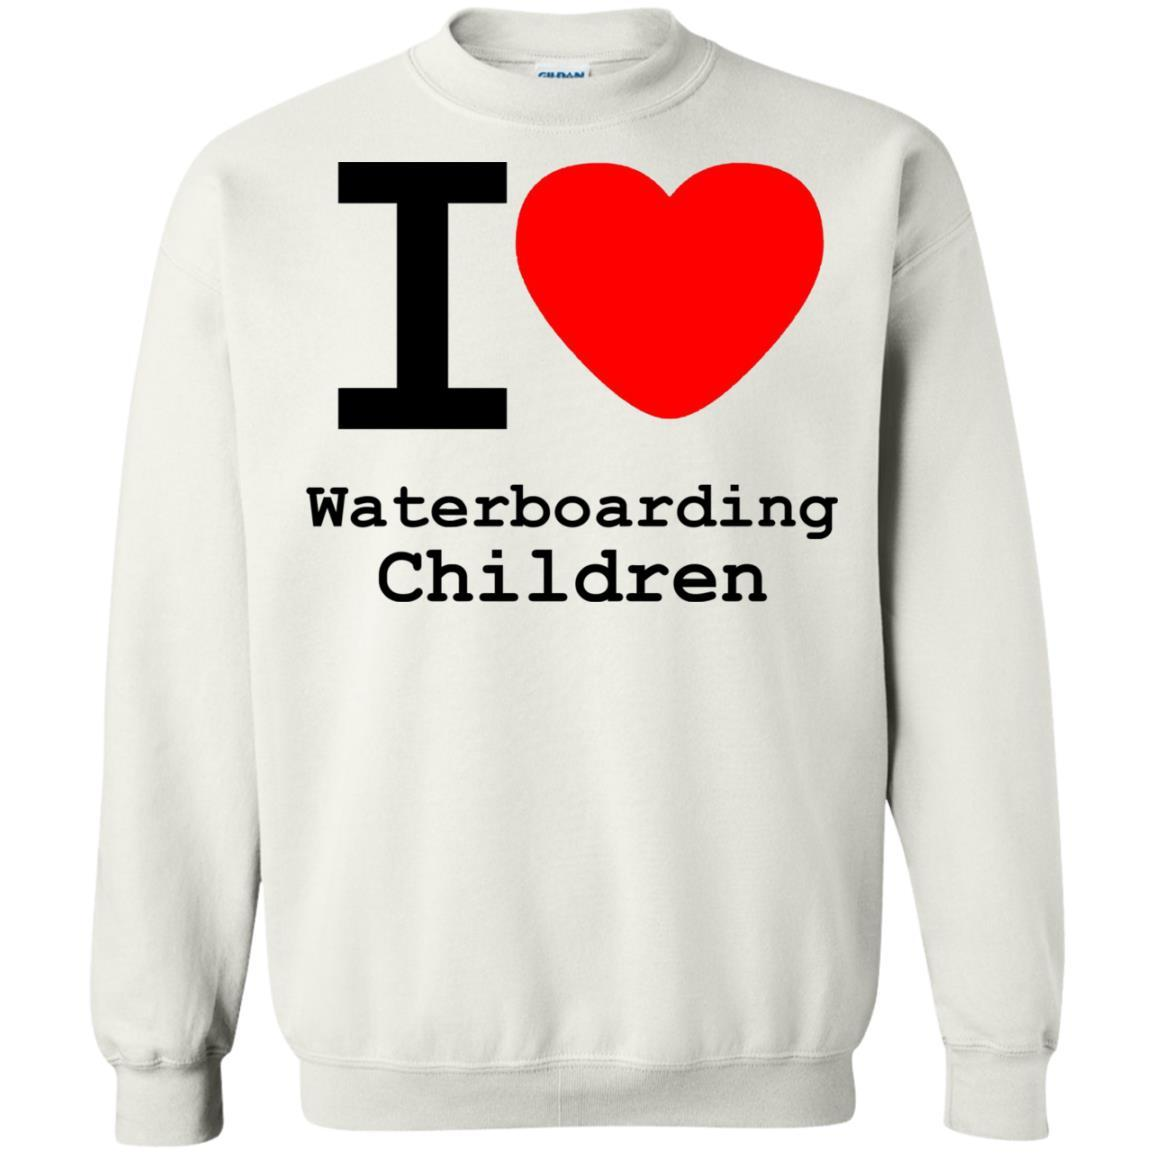 I love Waterboarding Children - Crewneck Pullover Sweatshirt White / 5XL